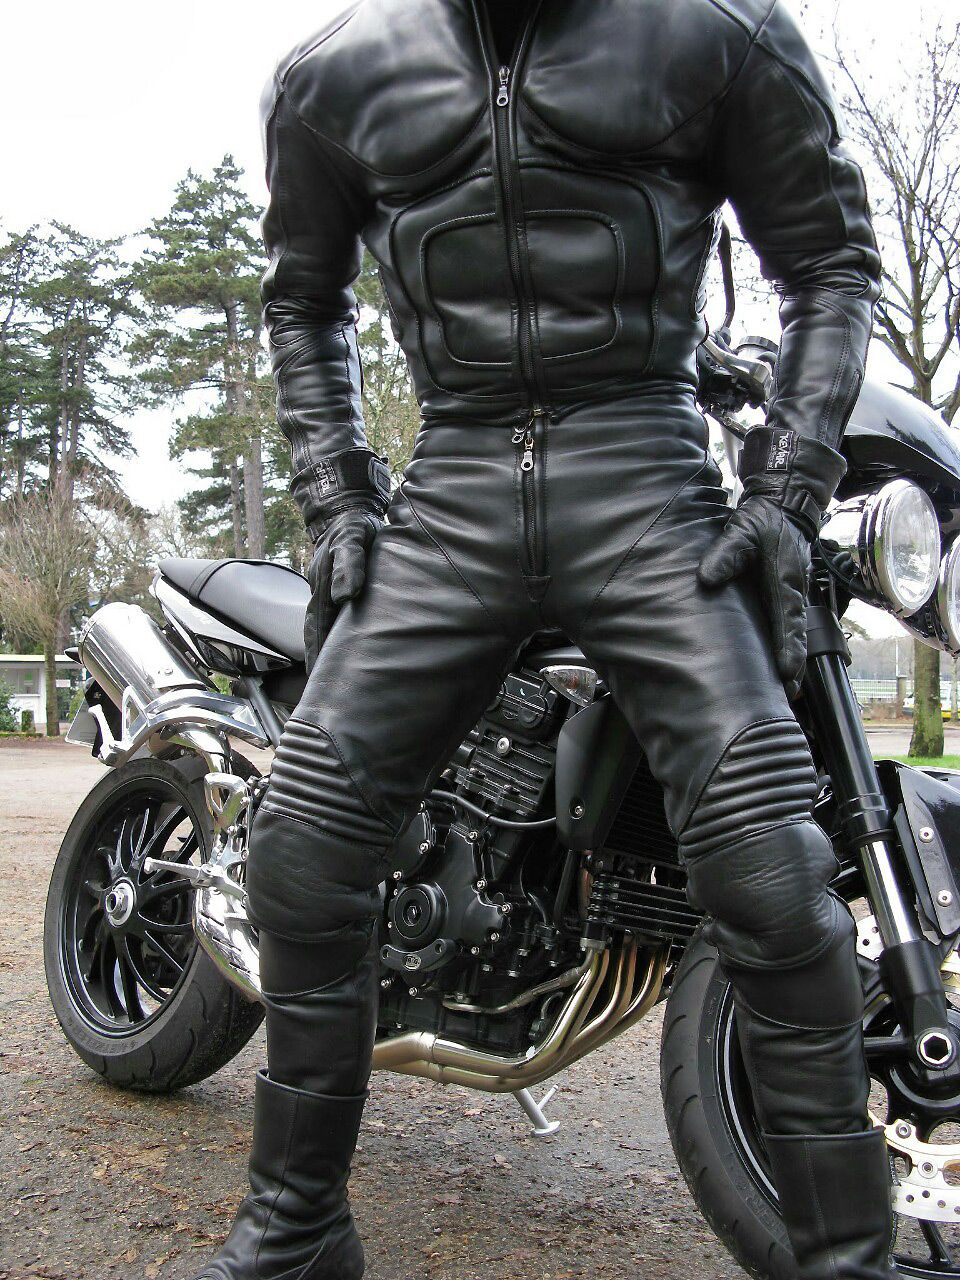 A one- or two-piece leather suit will give you optimum abrasion resistance in the event of a crash or slide and if you're thinking about taking your bike on track, you'll need a set of one-piece leathers, or two-piece suit that zips together at the waist.